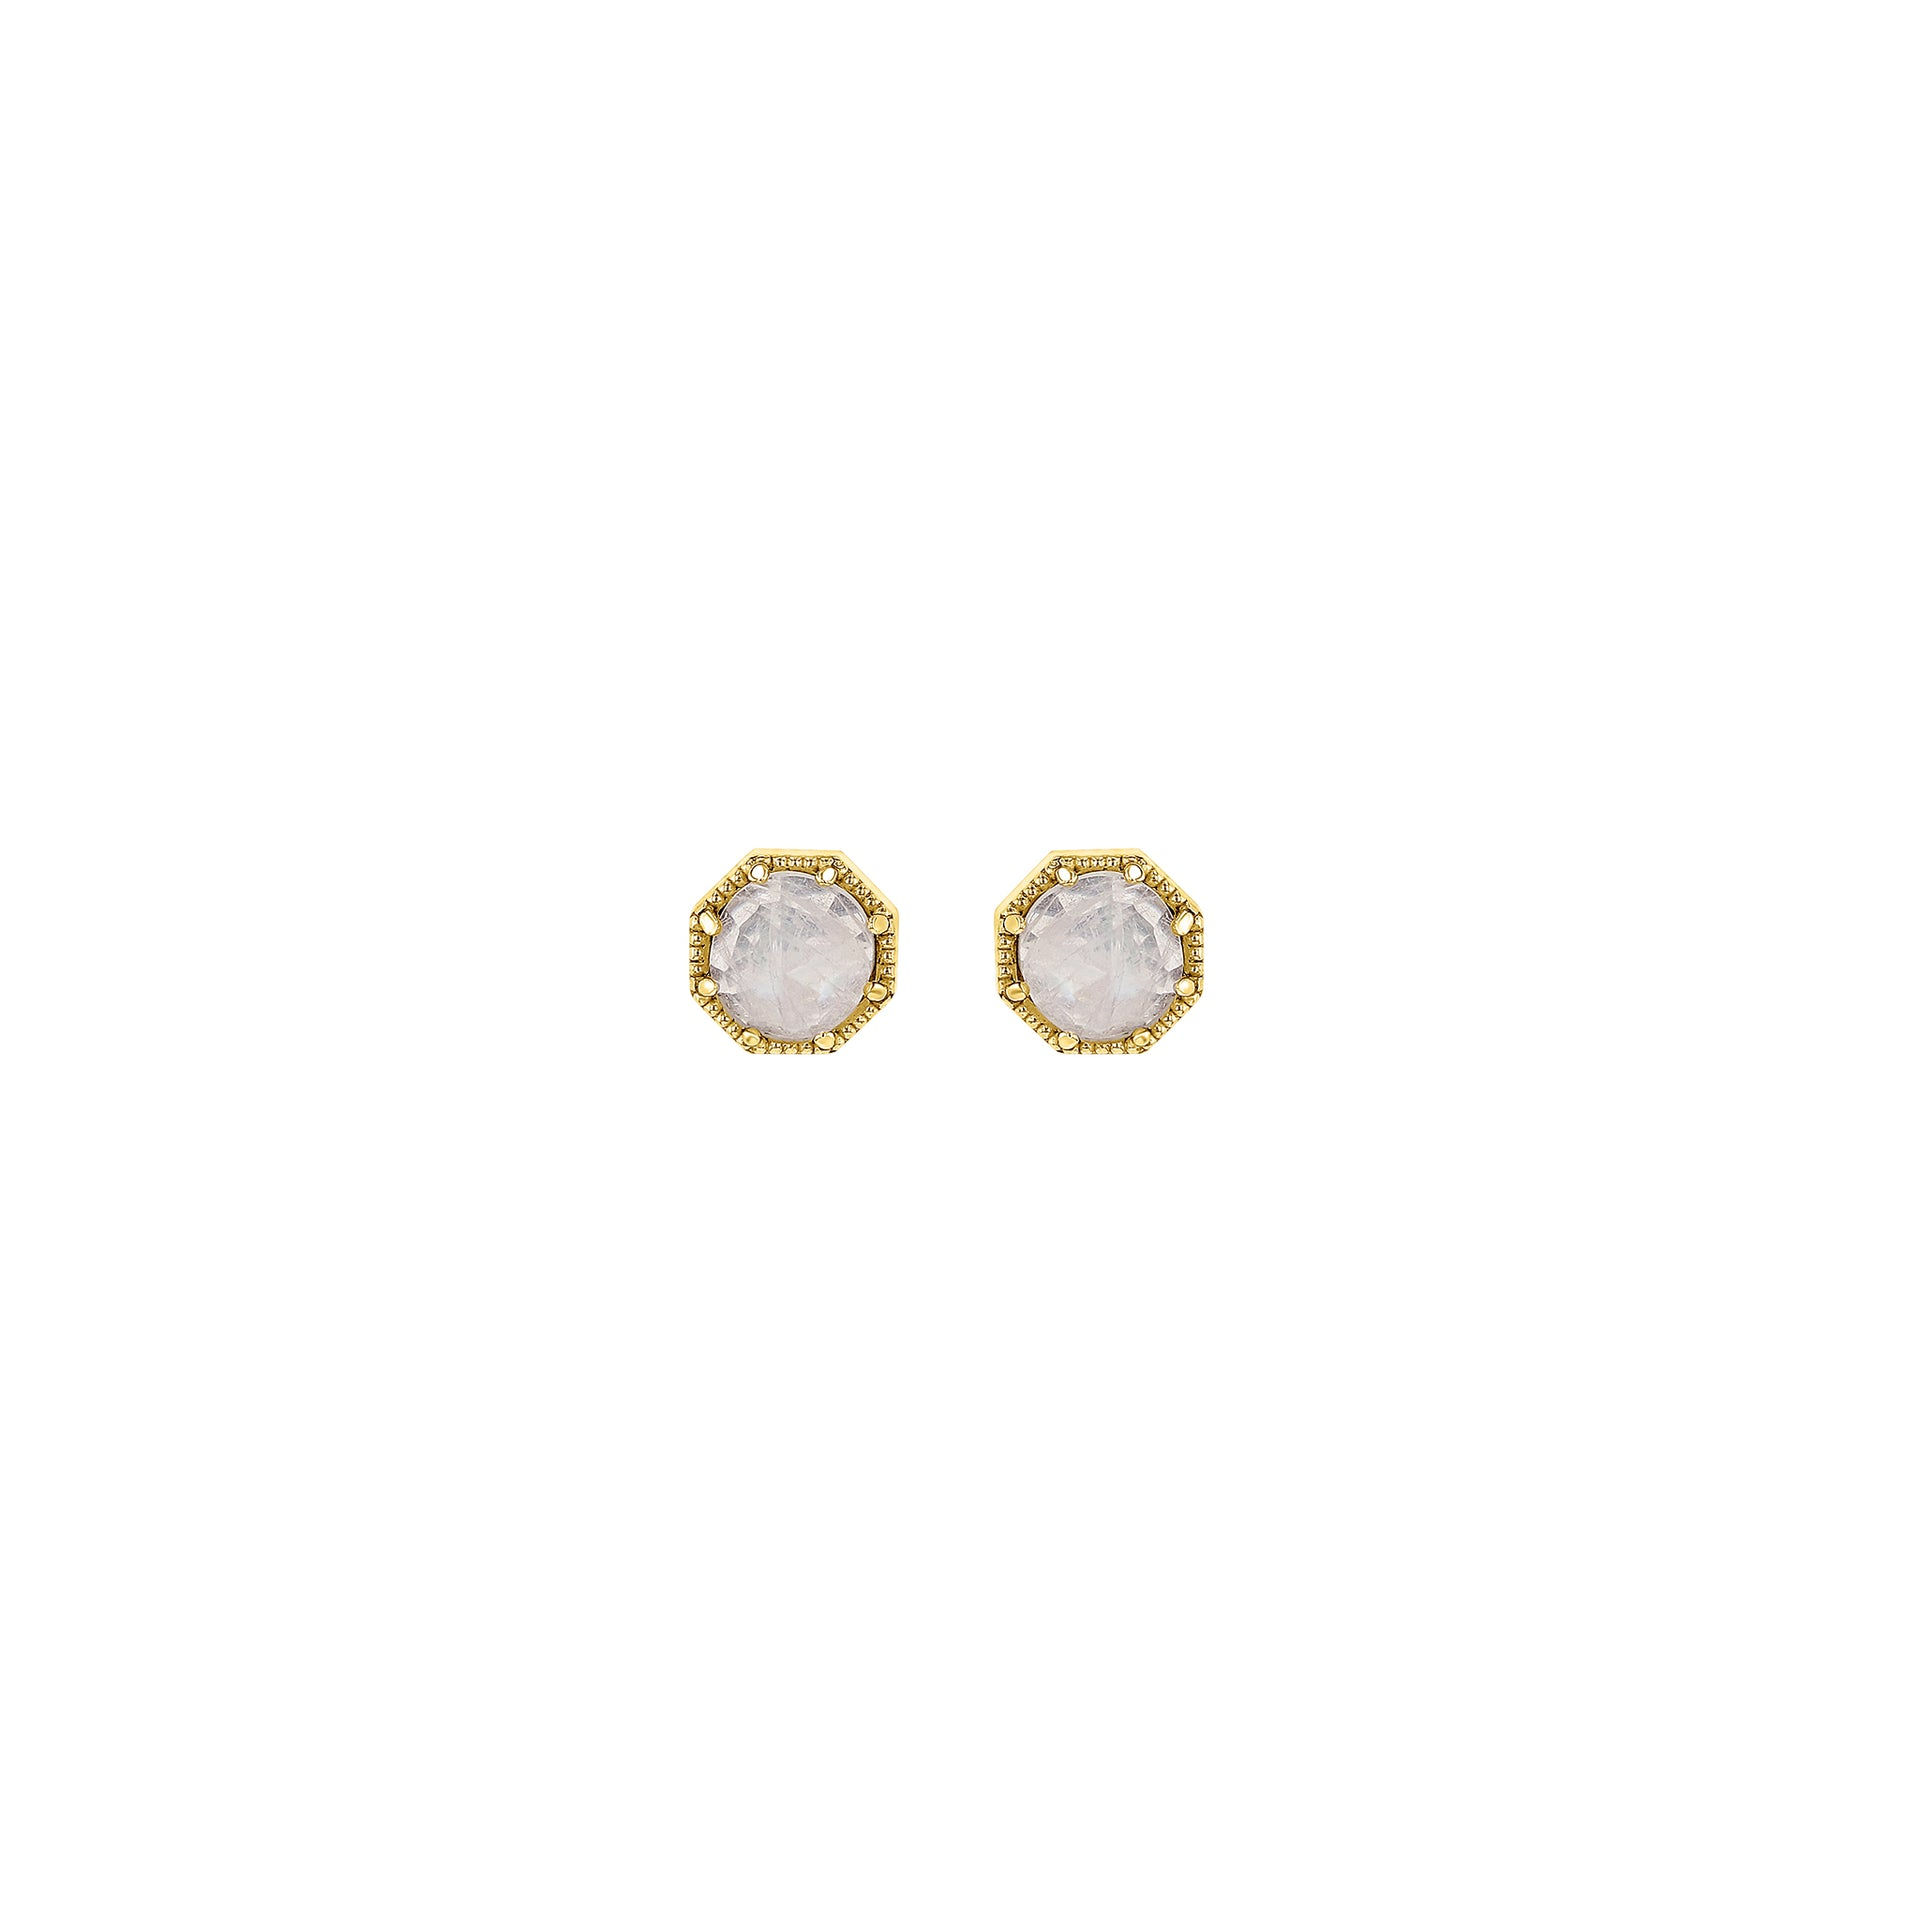 Crown Bezel Moonstone Earrings - RTS